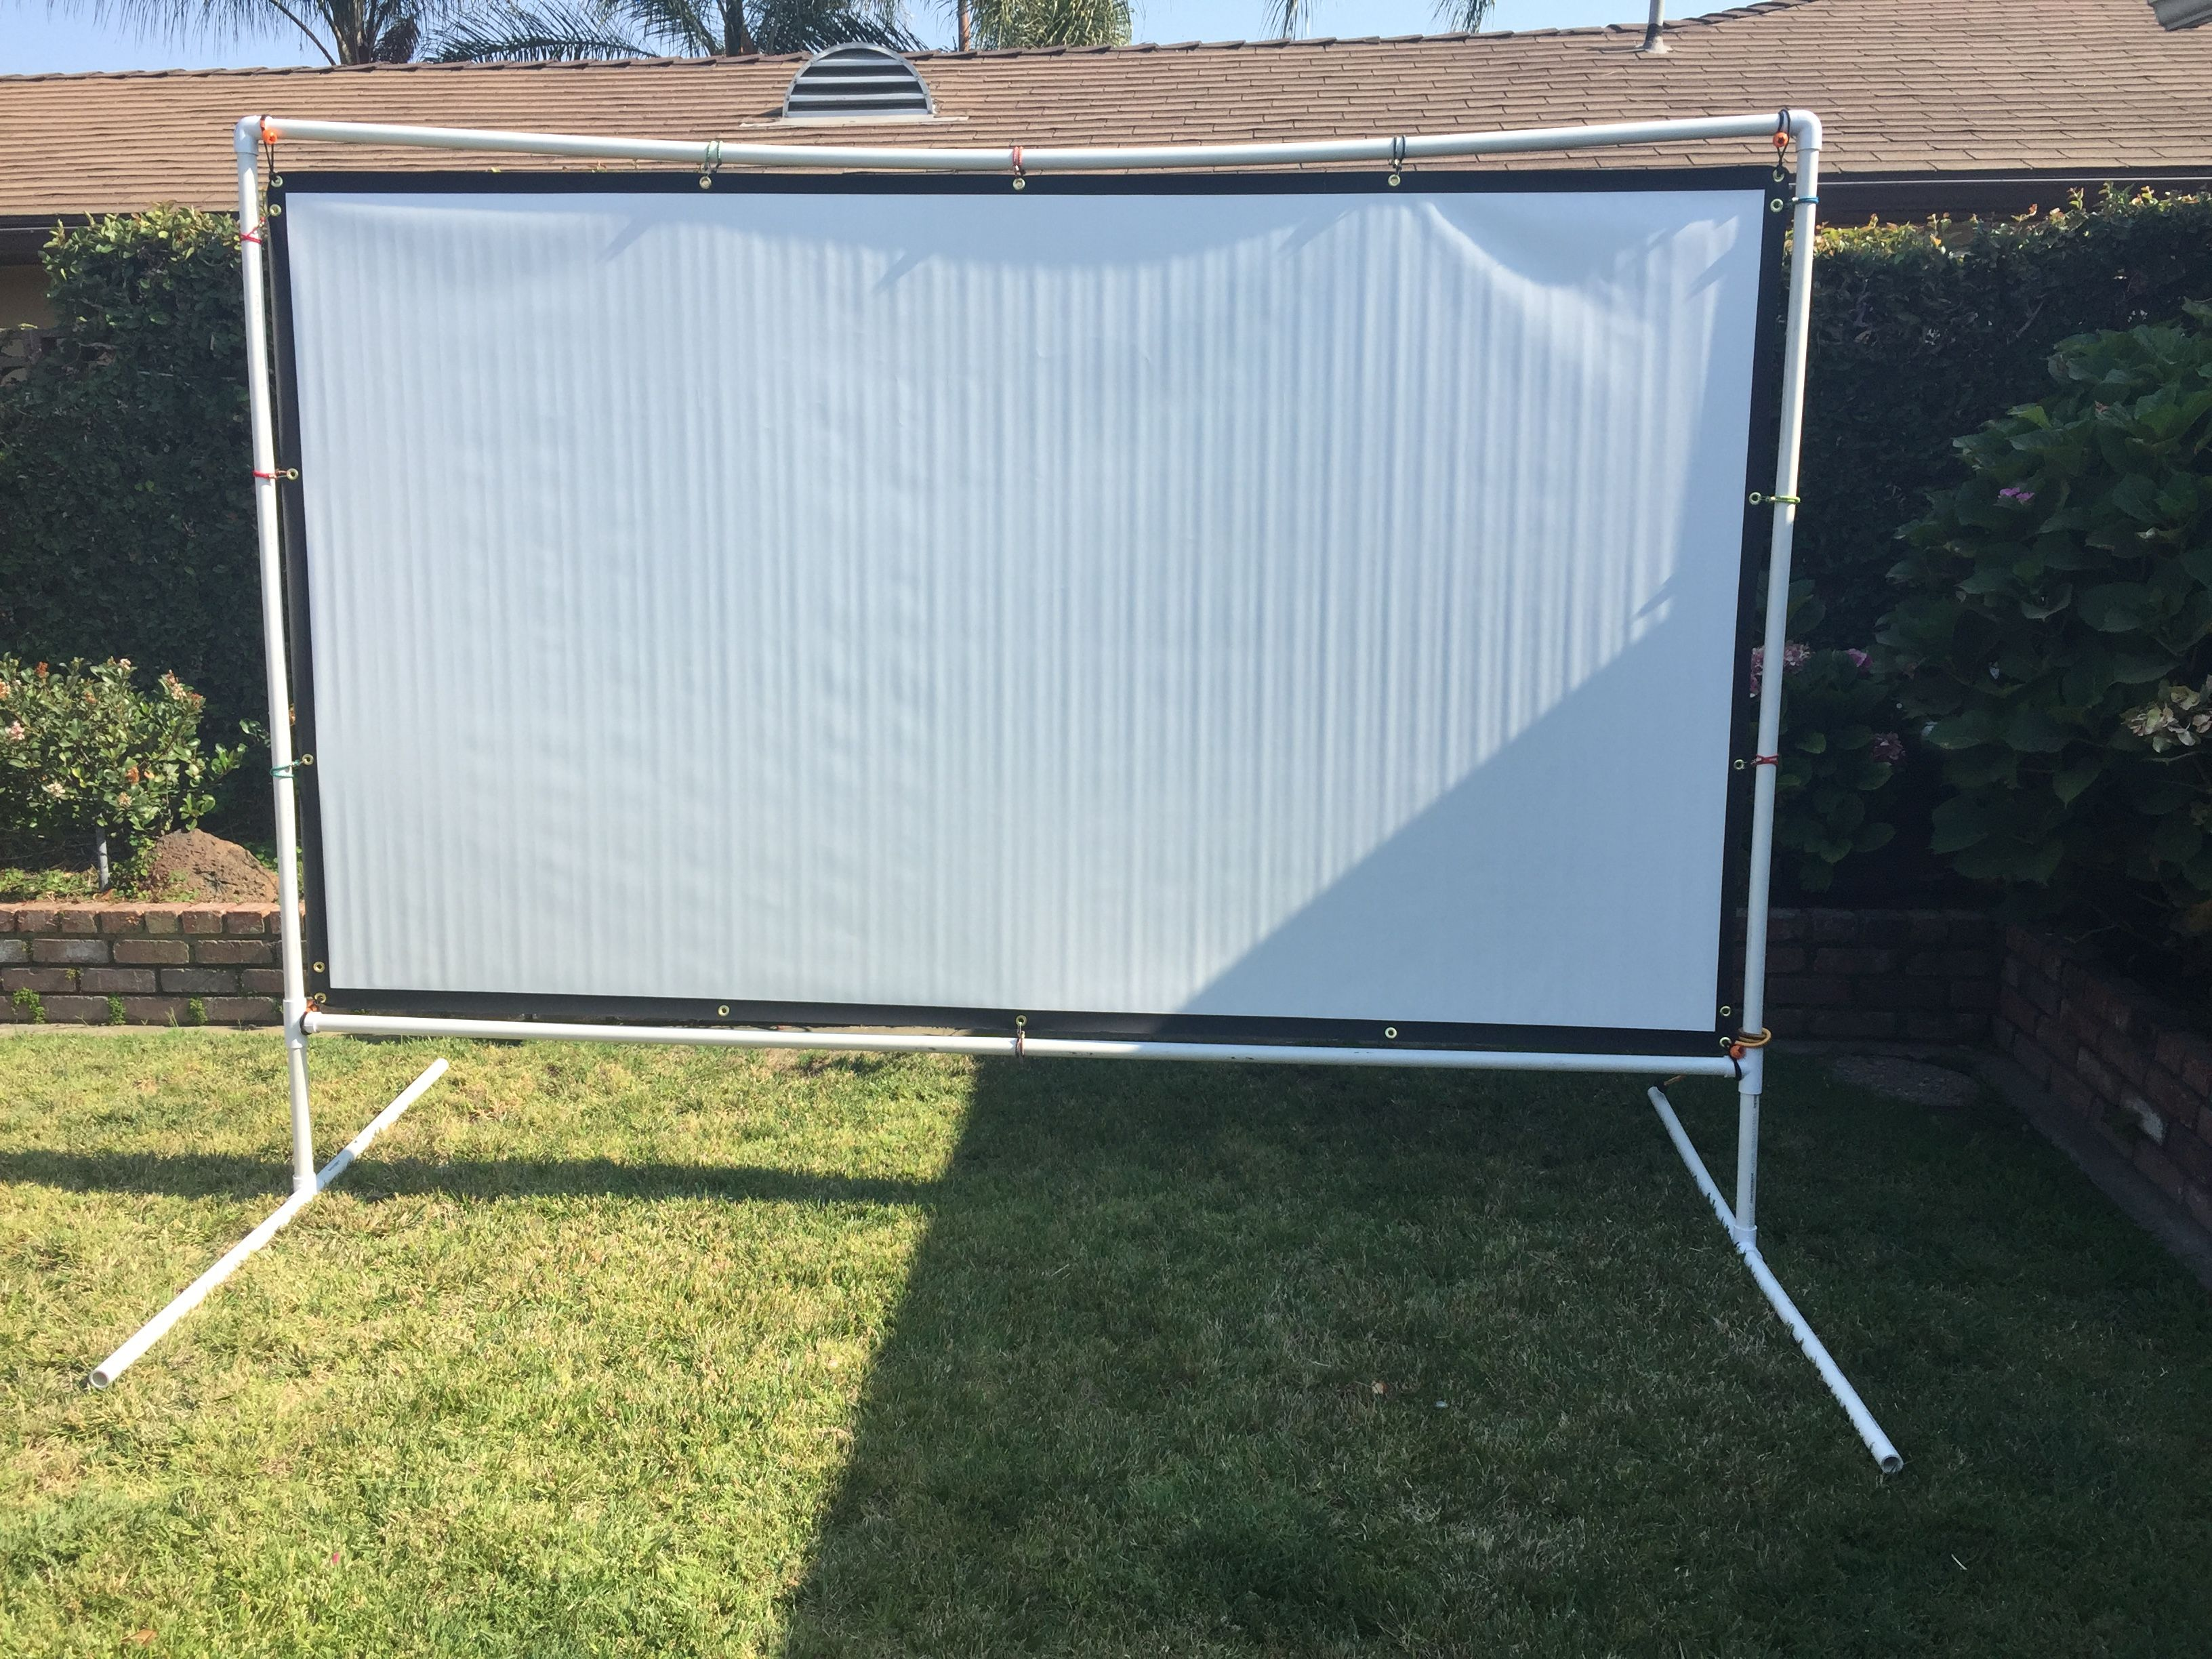 120 Projector Screen With Pvc Frame Projector Screen Diy Diy Outdoor Movie Screen Outdoor Projector Screen Diy